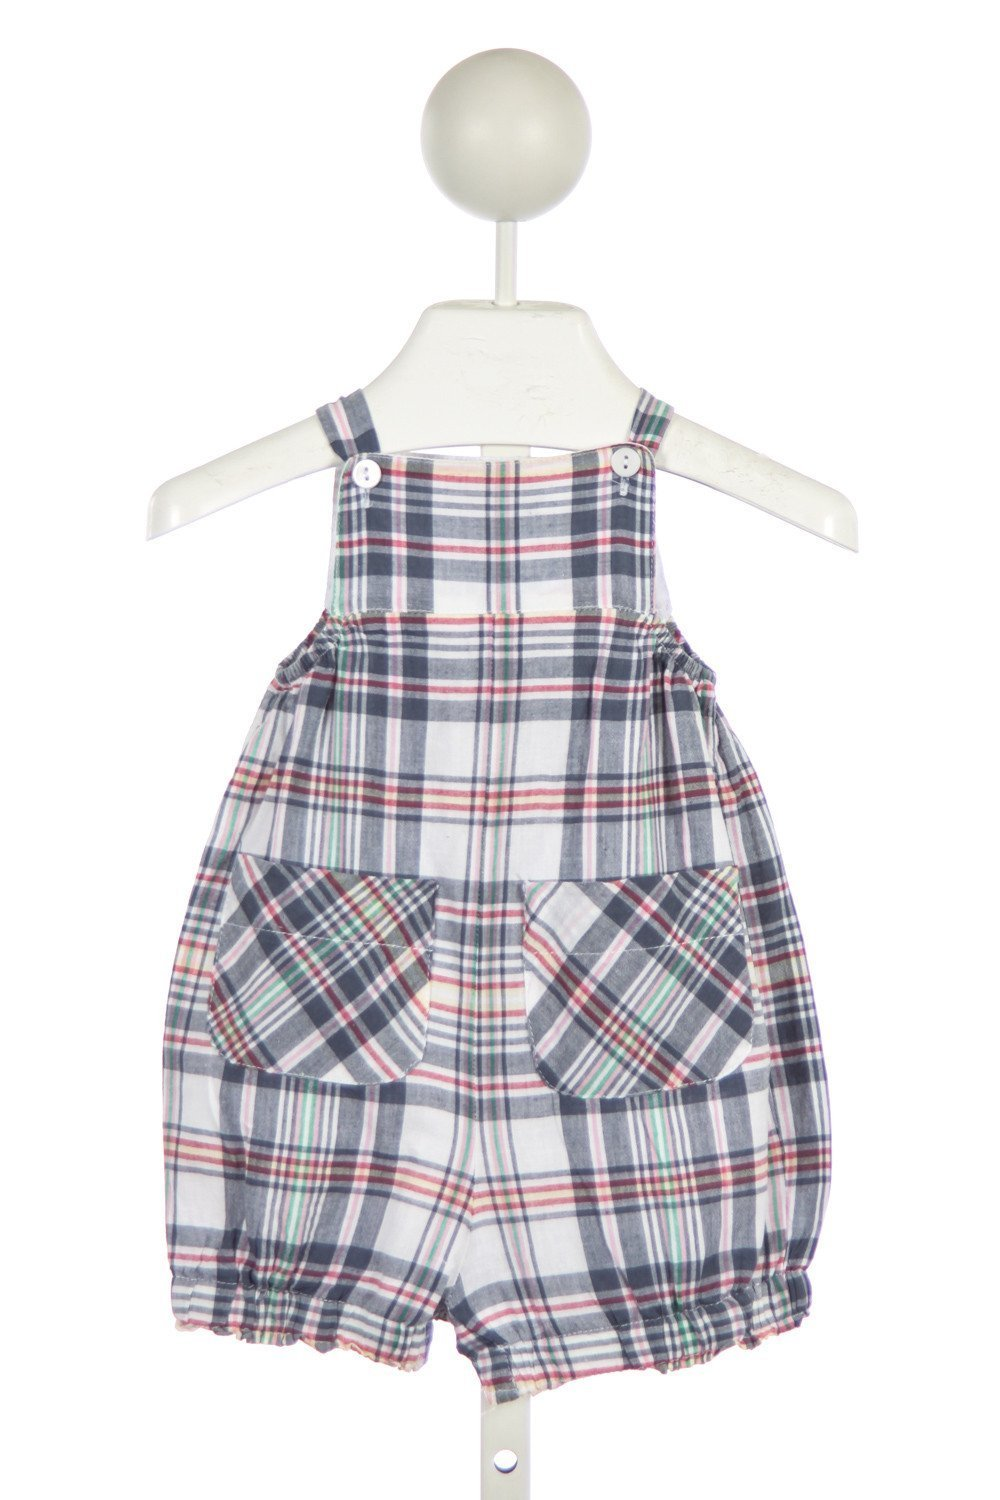 BELLA BLISS NAVY PLAID BUBBLE WITH POCKETS